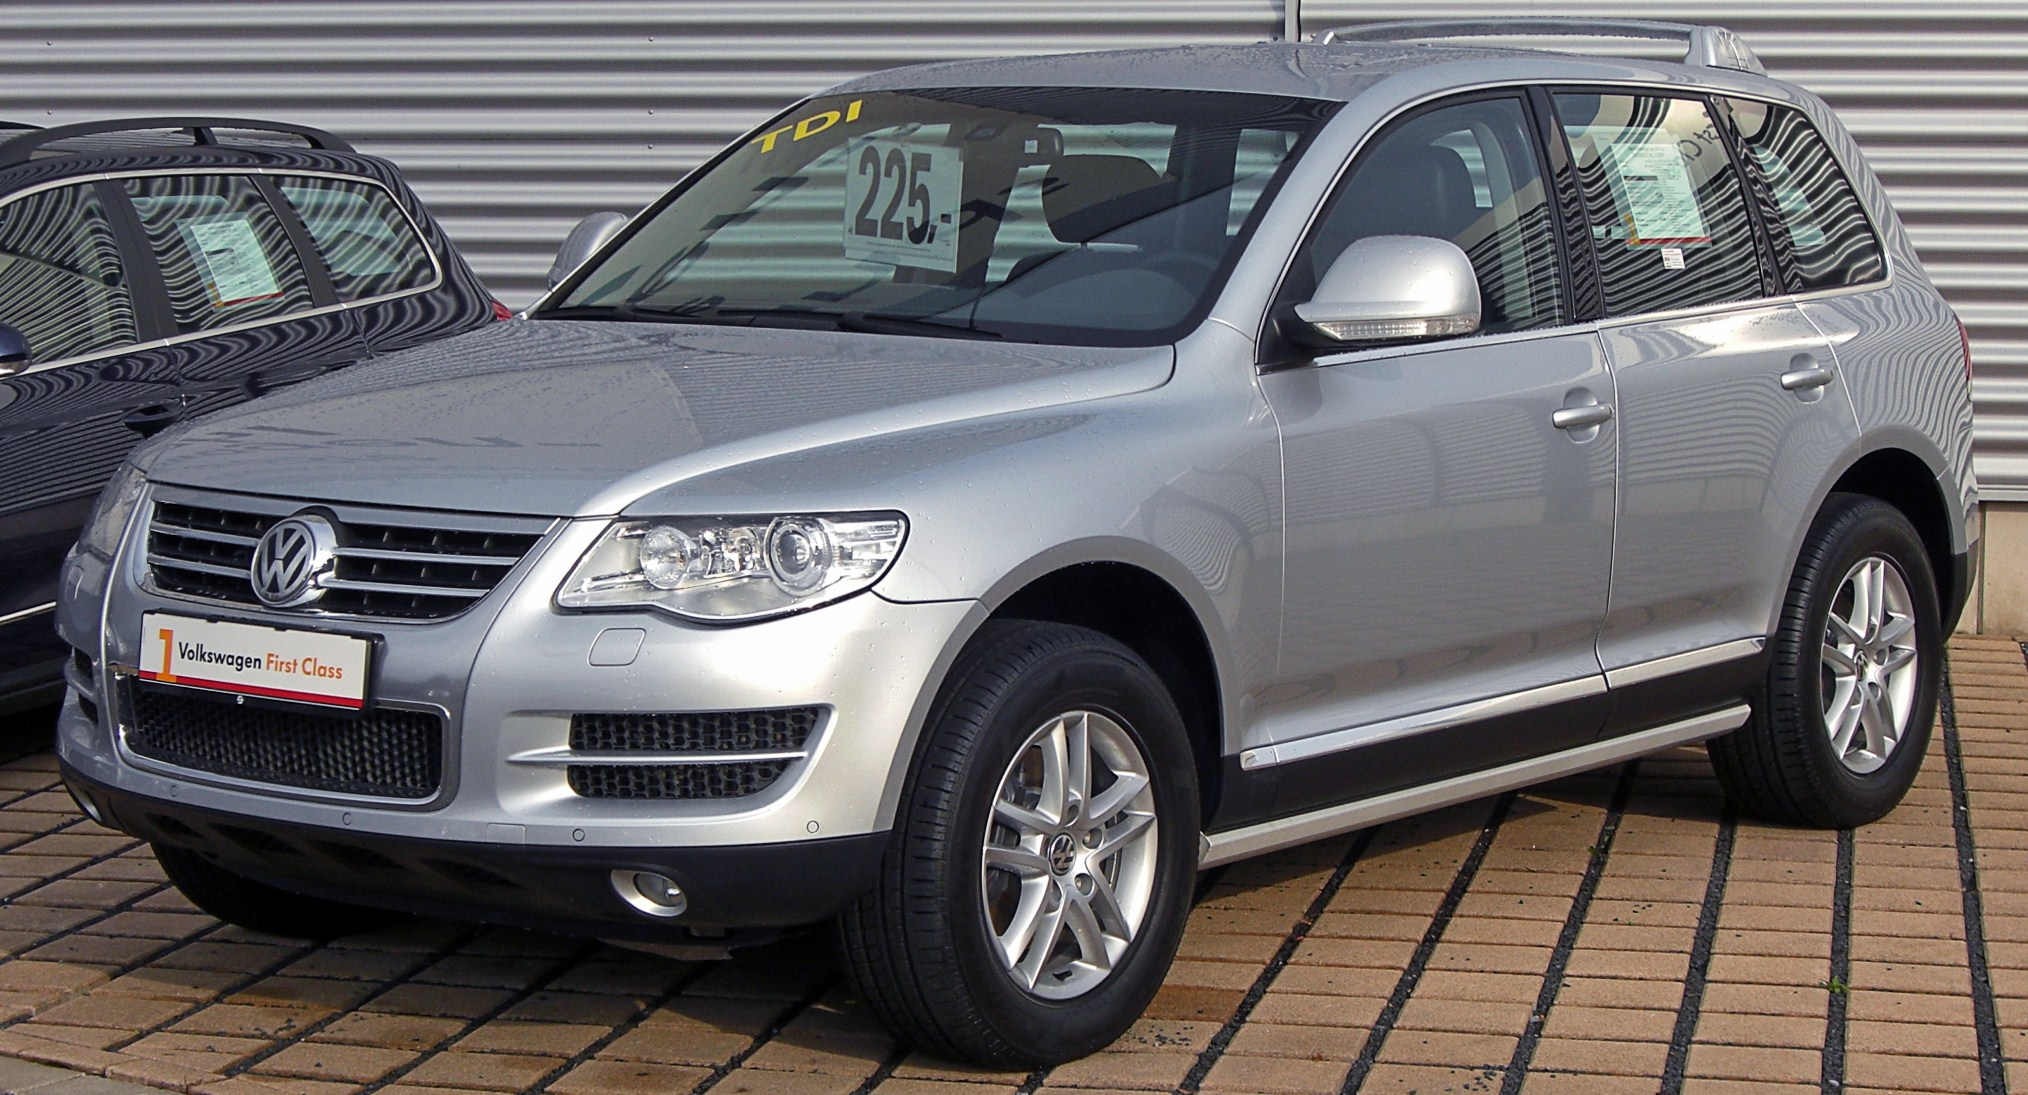 File:VW Touareg V6 TDI Facelift front.JPG - Wikimedia Commons